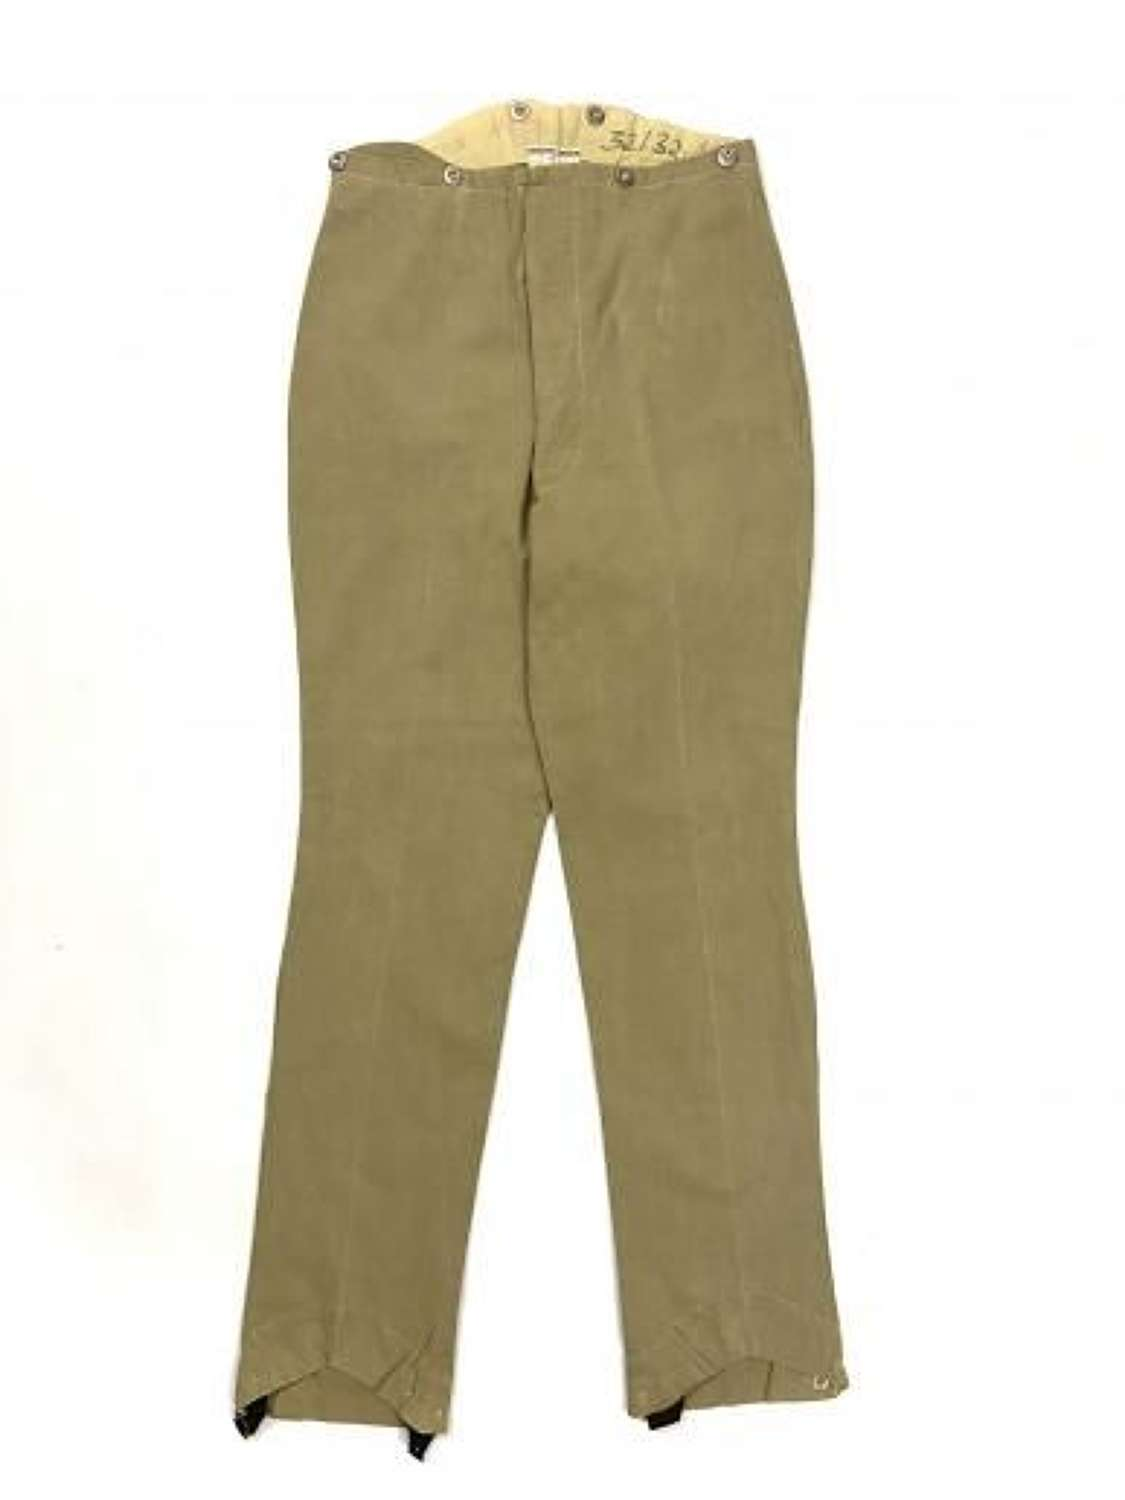 Original Great War Officers Khaki Drill Trousers by 'Hawkes & Co'.